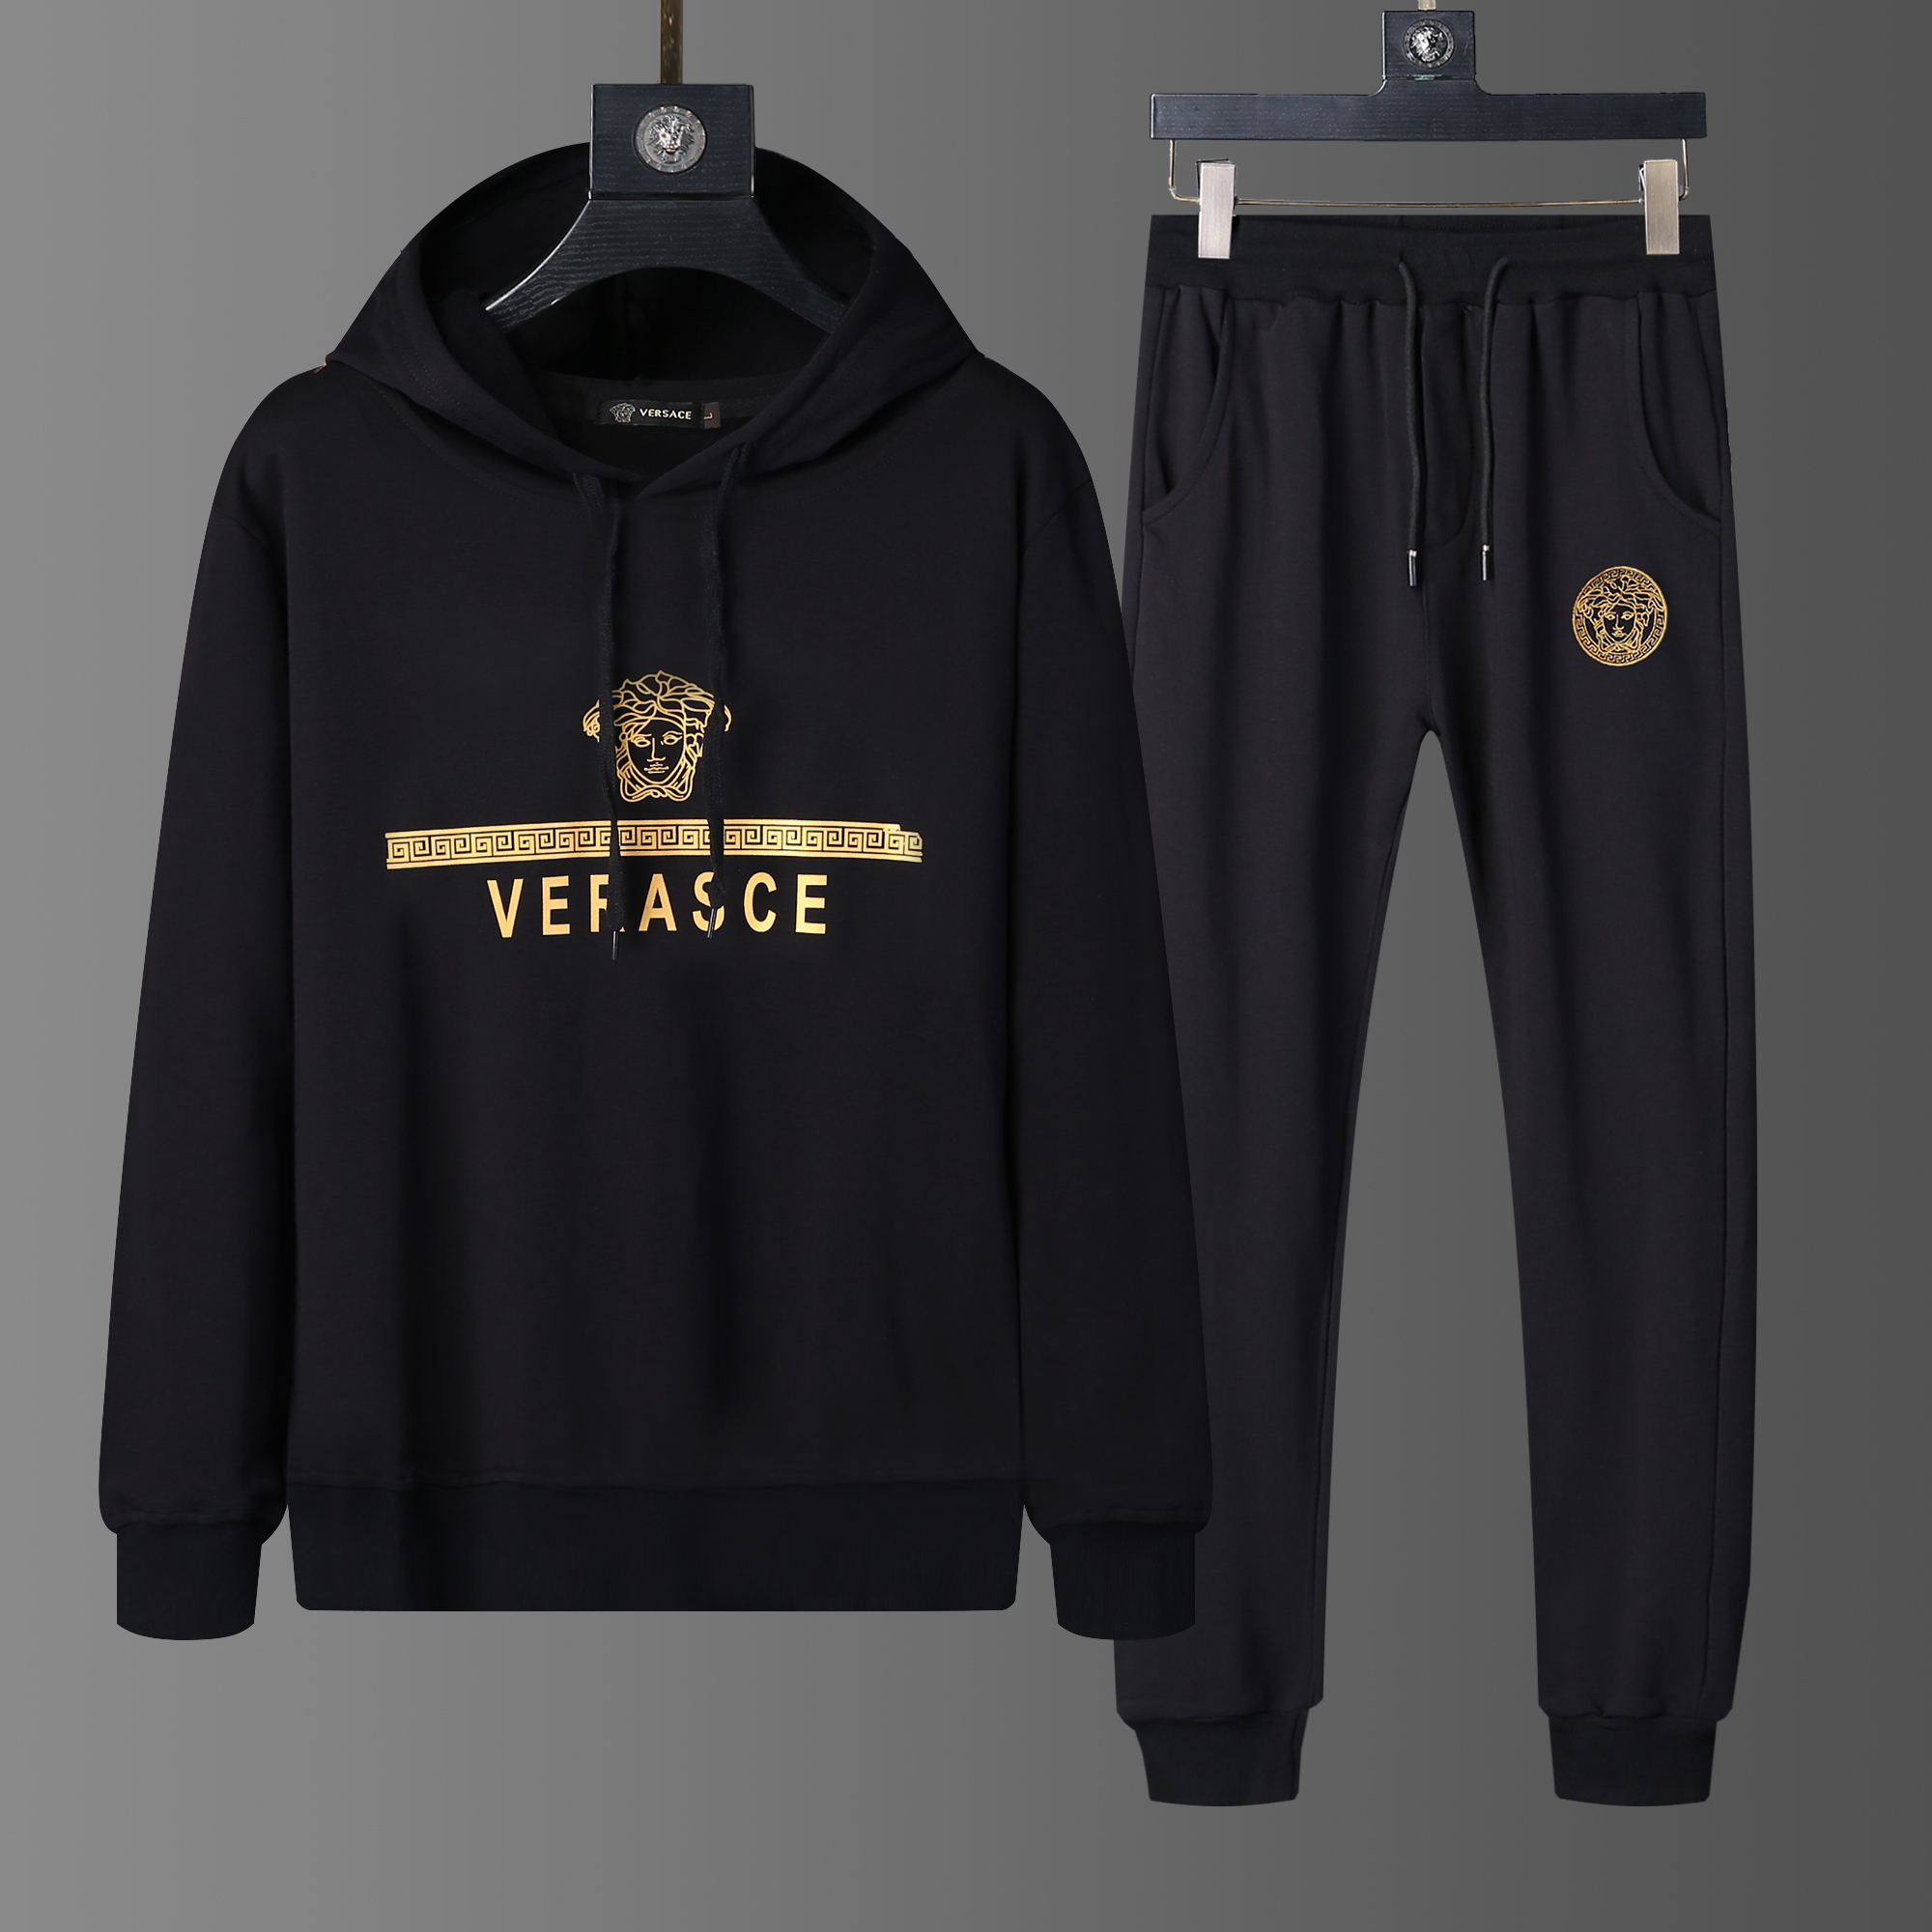 2020 Versace Tracksuits For Men For Men in 229237, cheap Versace Tracksuits, only $82!